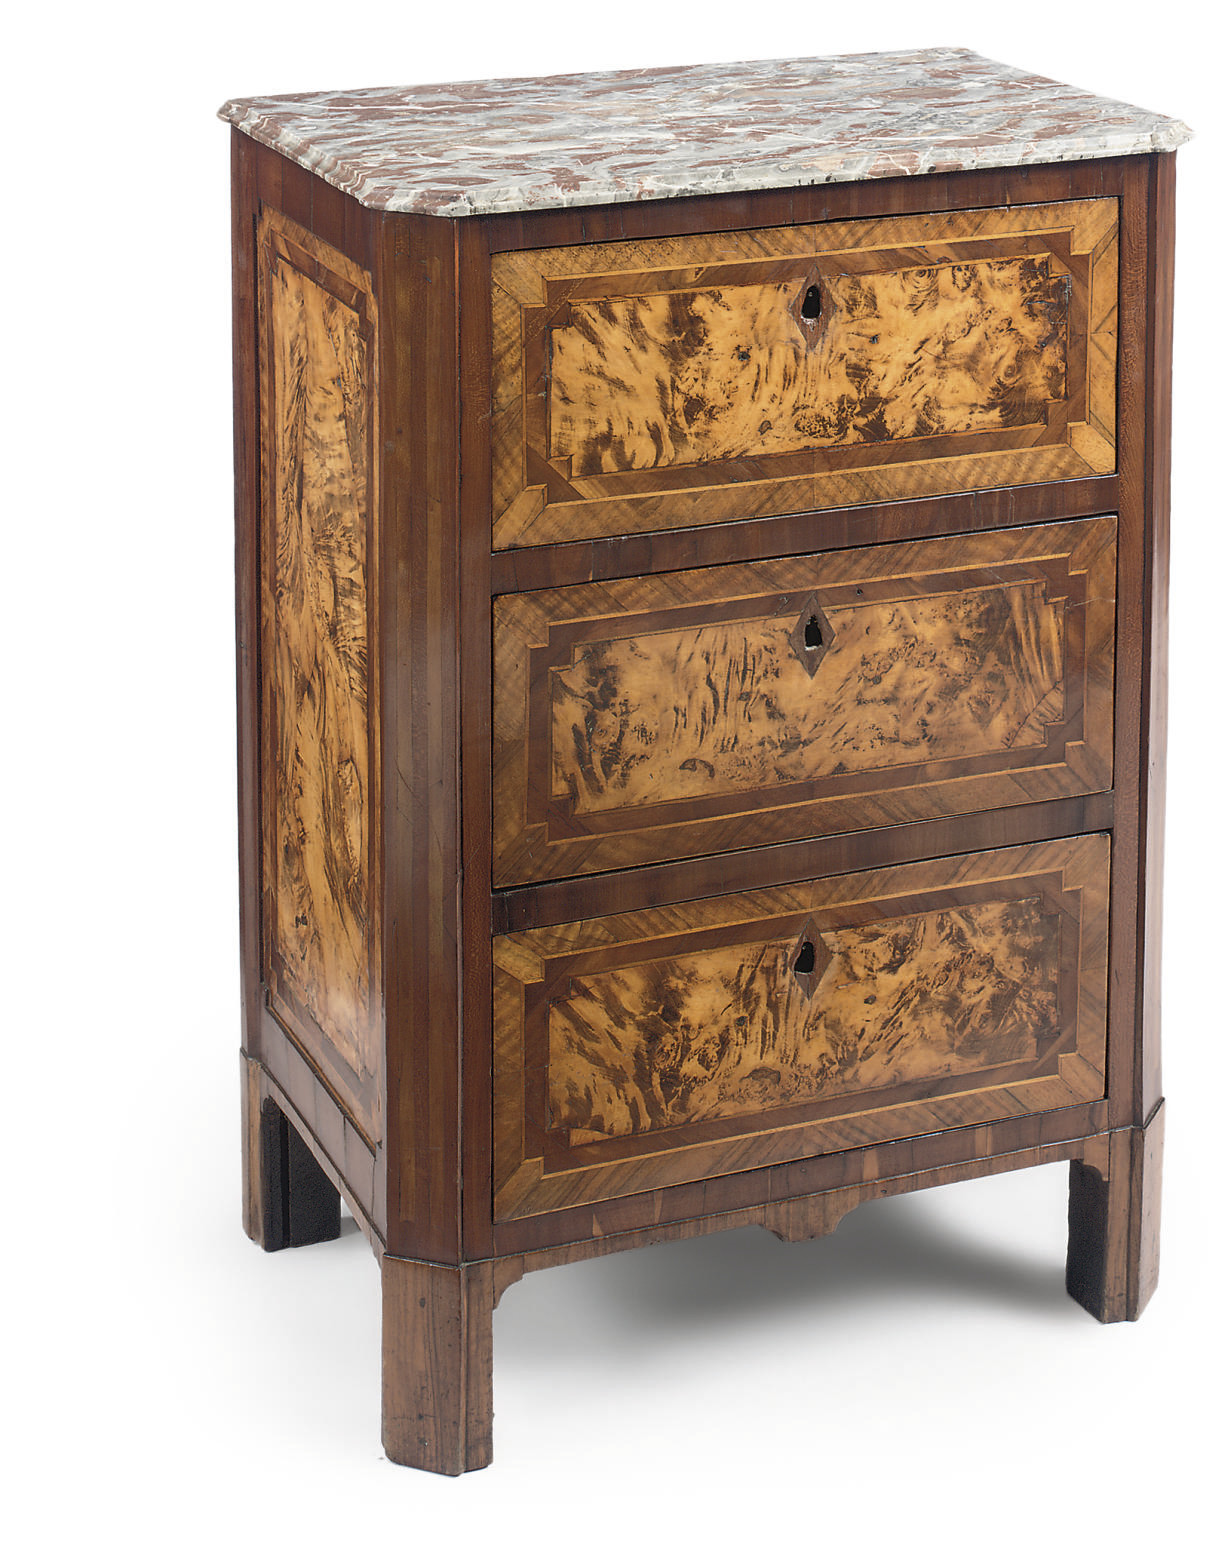 A FRENCH PROVINCIAL FRUITWOOD,